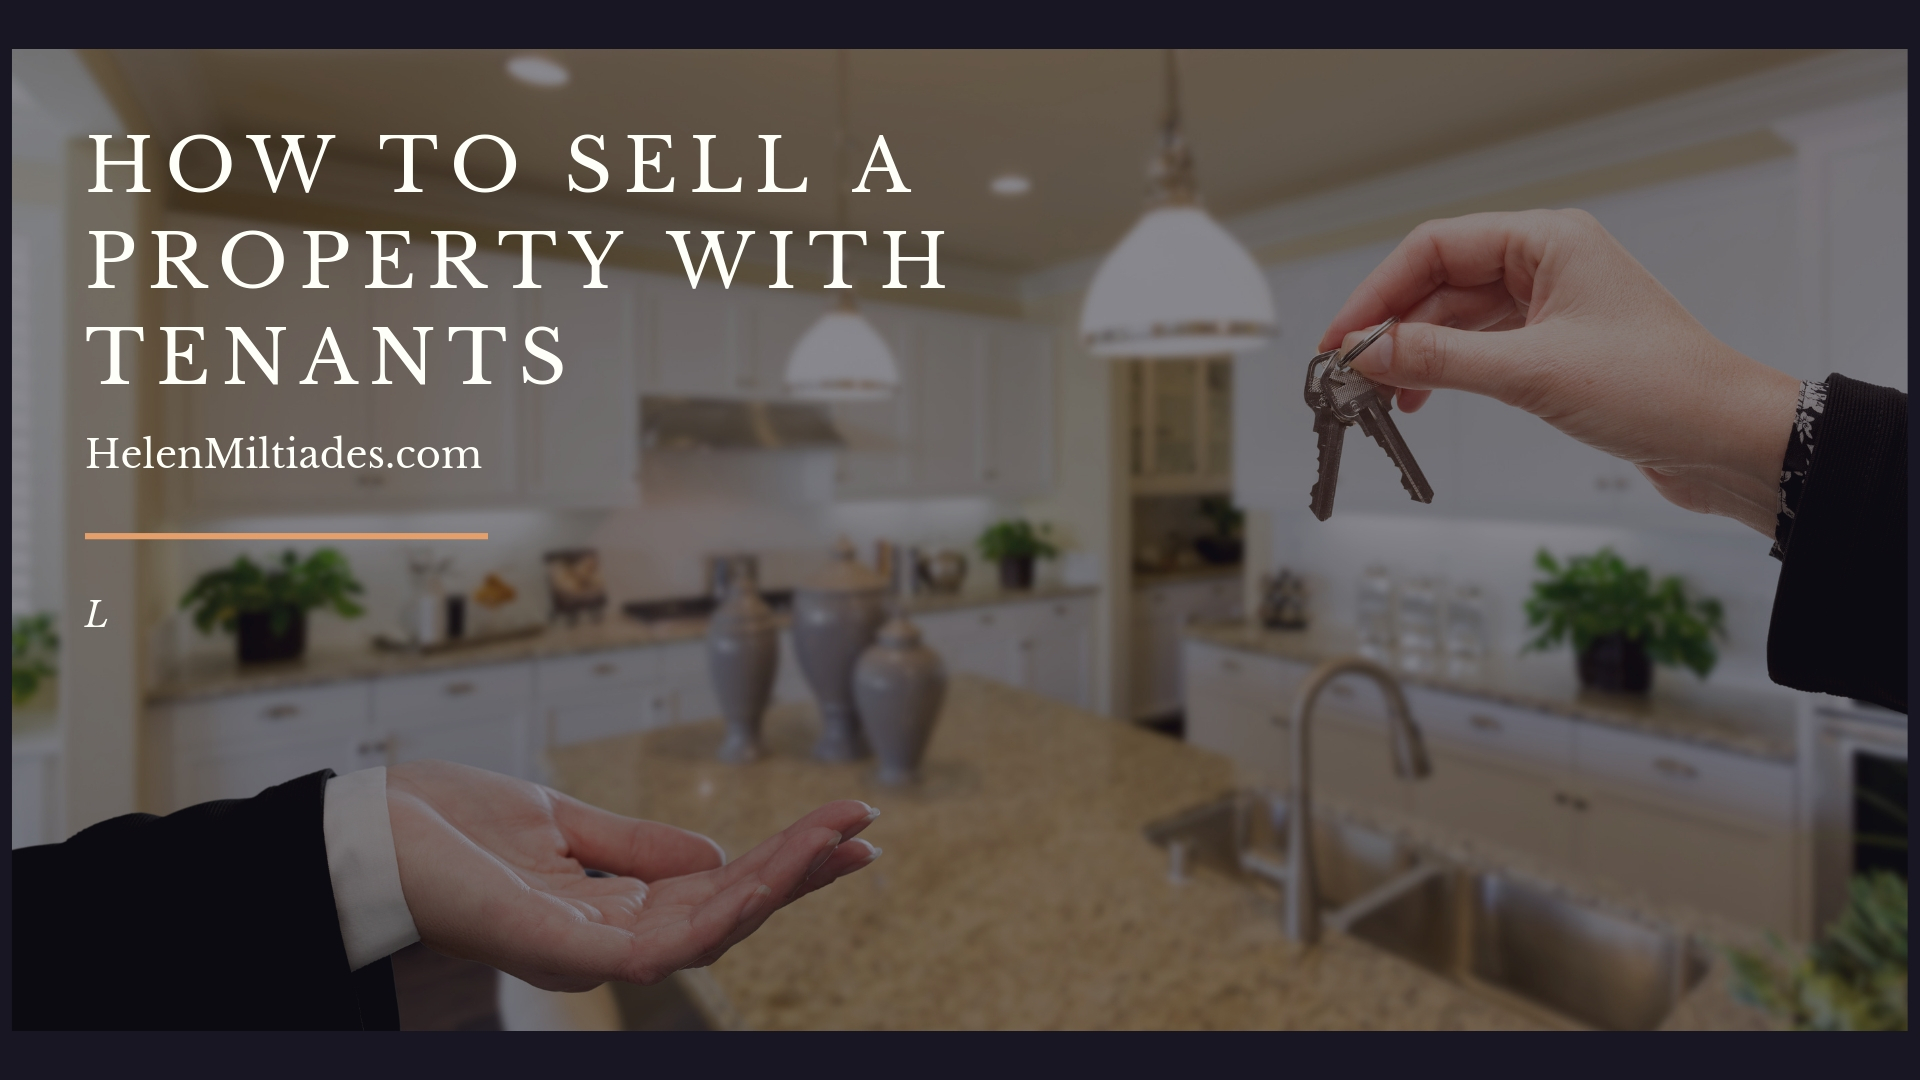 How to Sell a Property With Tenants